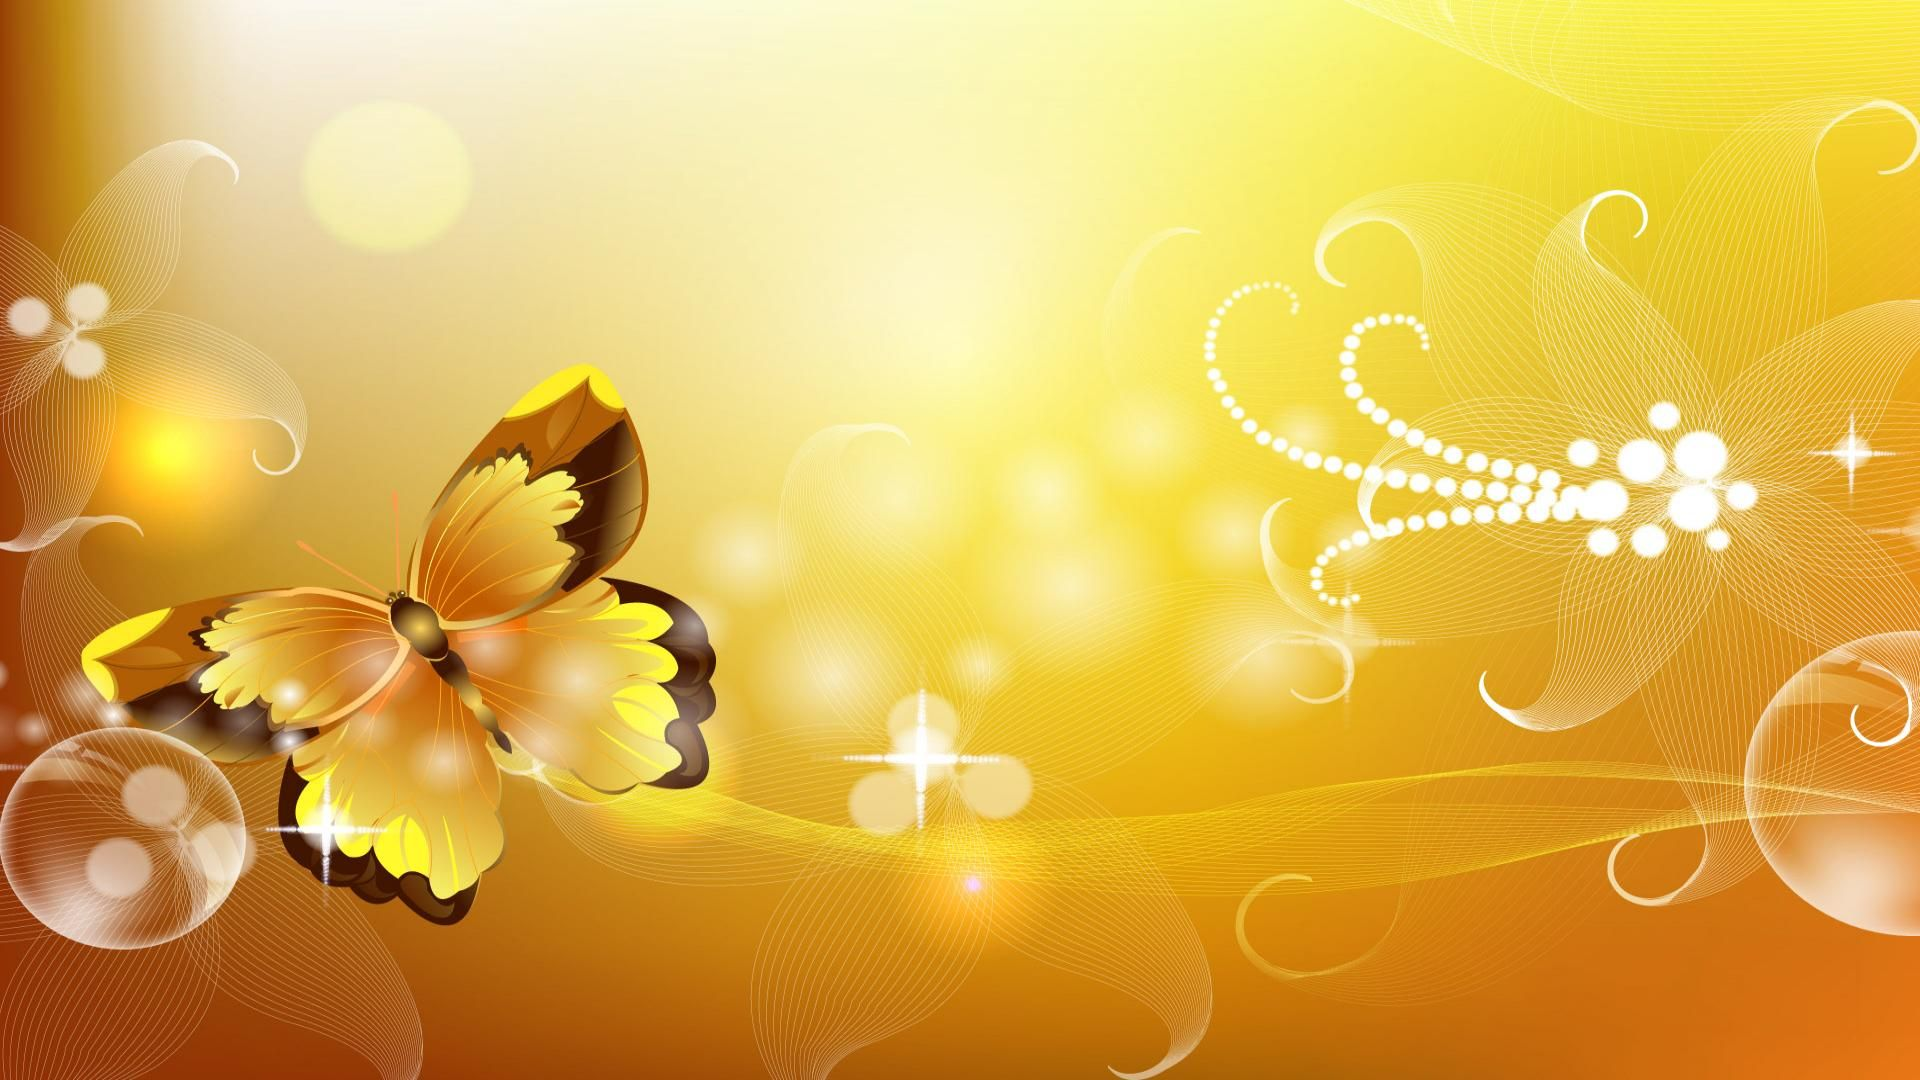 yellow background images hd hdesktops hd yellow background images hd hdesktops